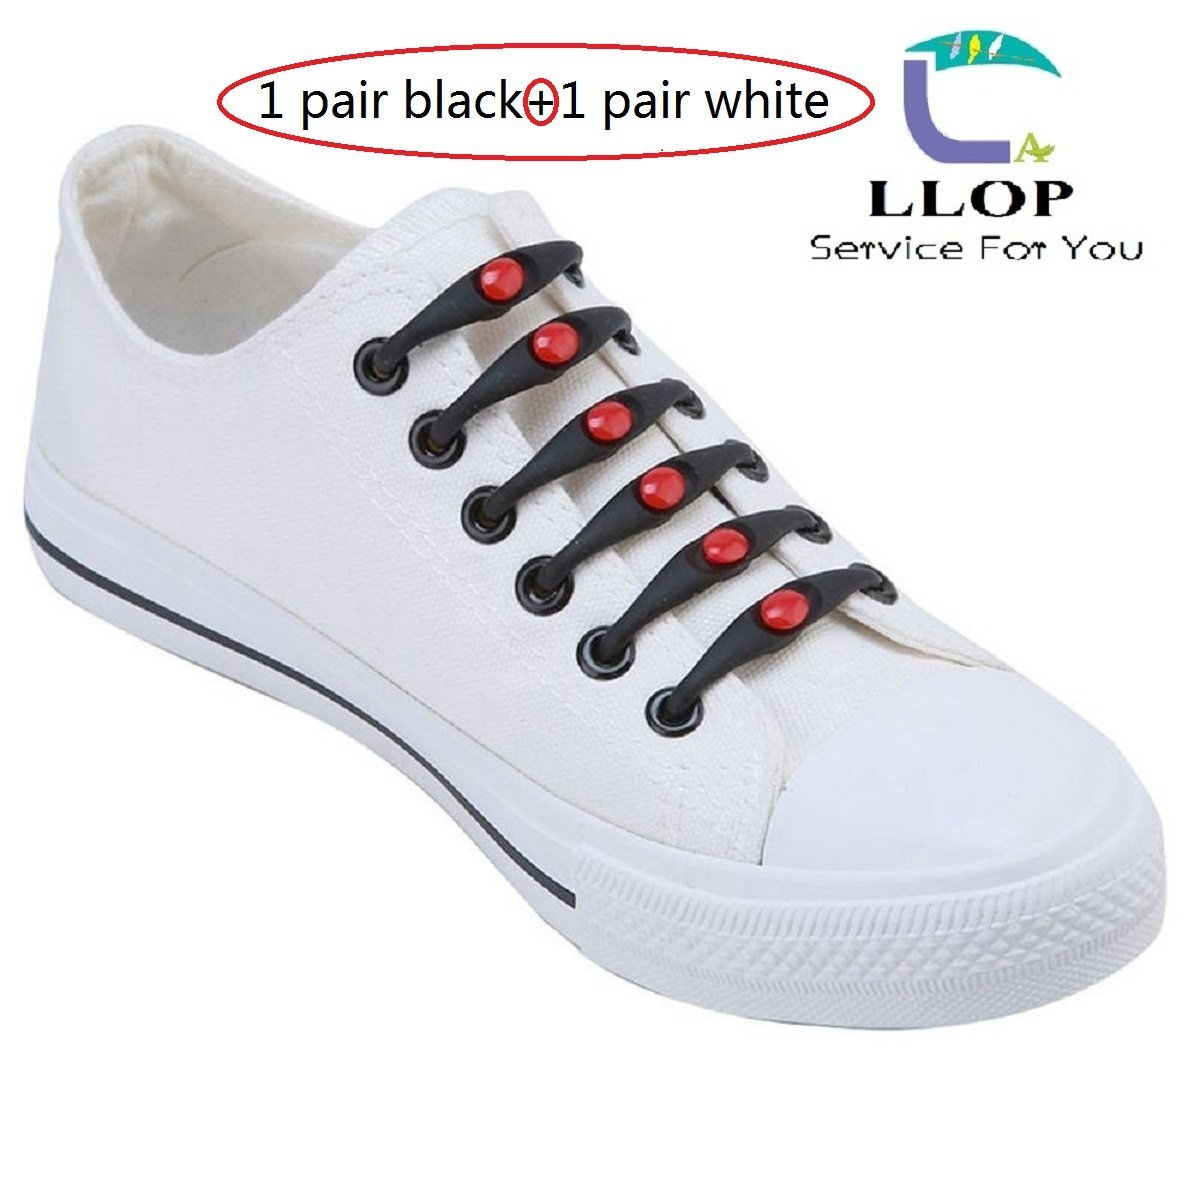 4aa0ed91a558 Get Quotations · LLOP Silicone Elastic No Tie Shoelaces Lock Bands  -Waterproof Flat Elastic Athletic Running Fan Shoe